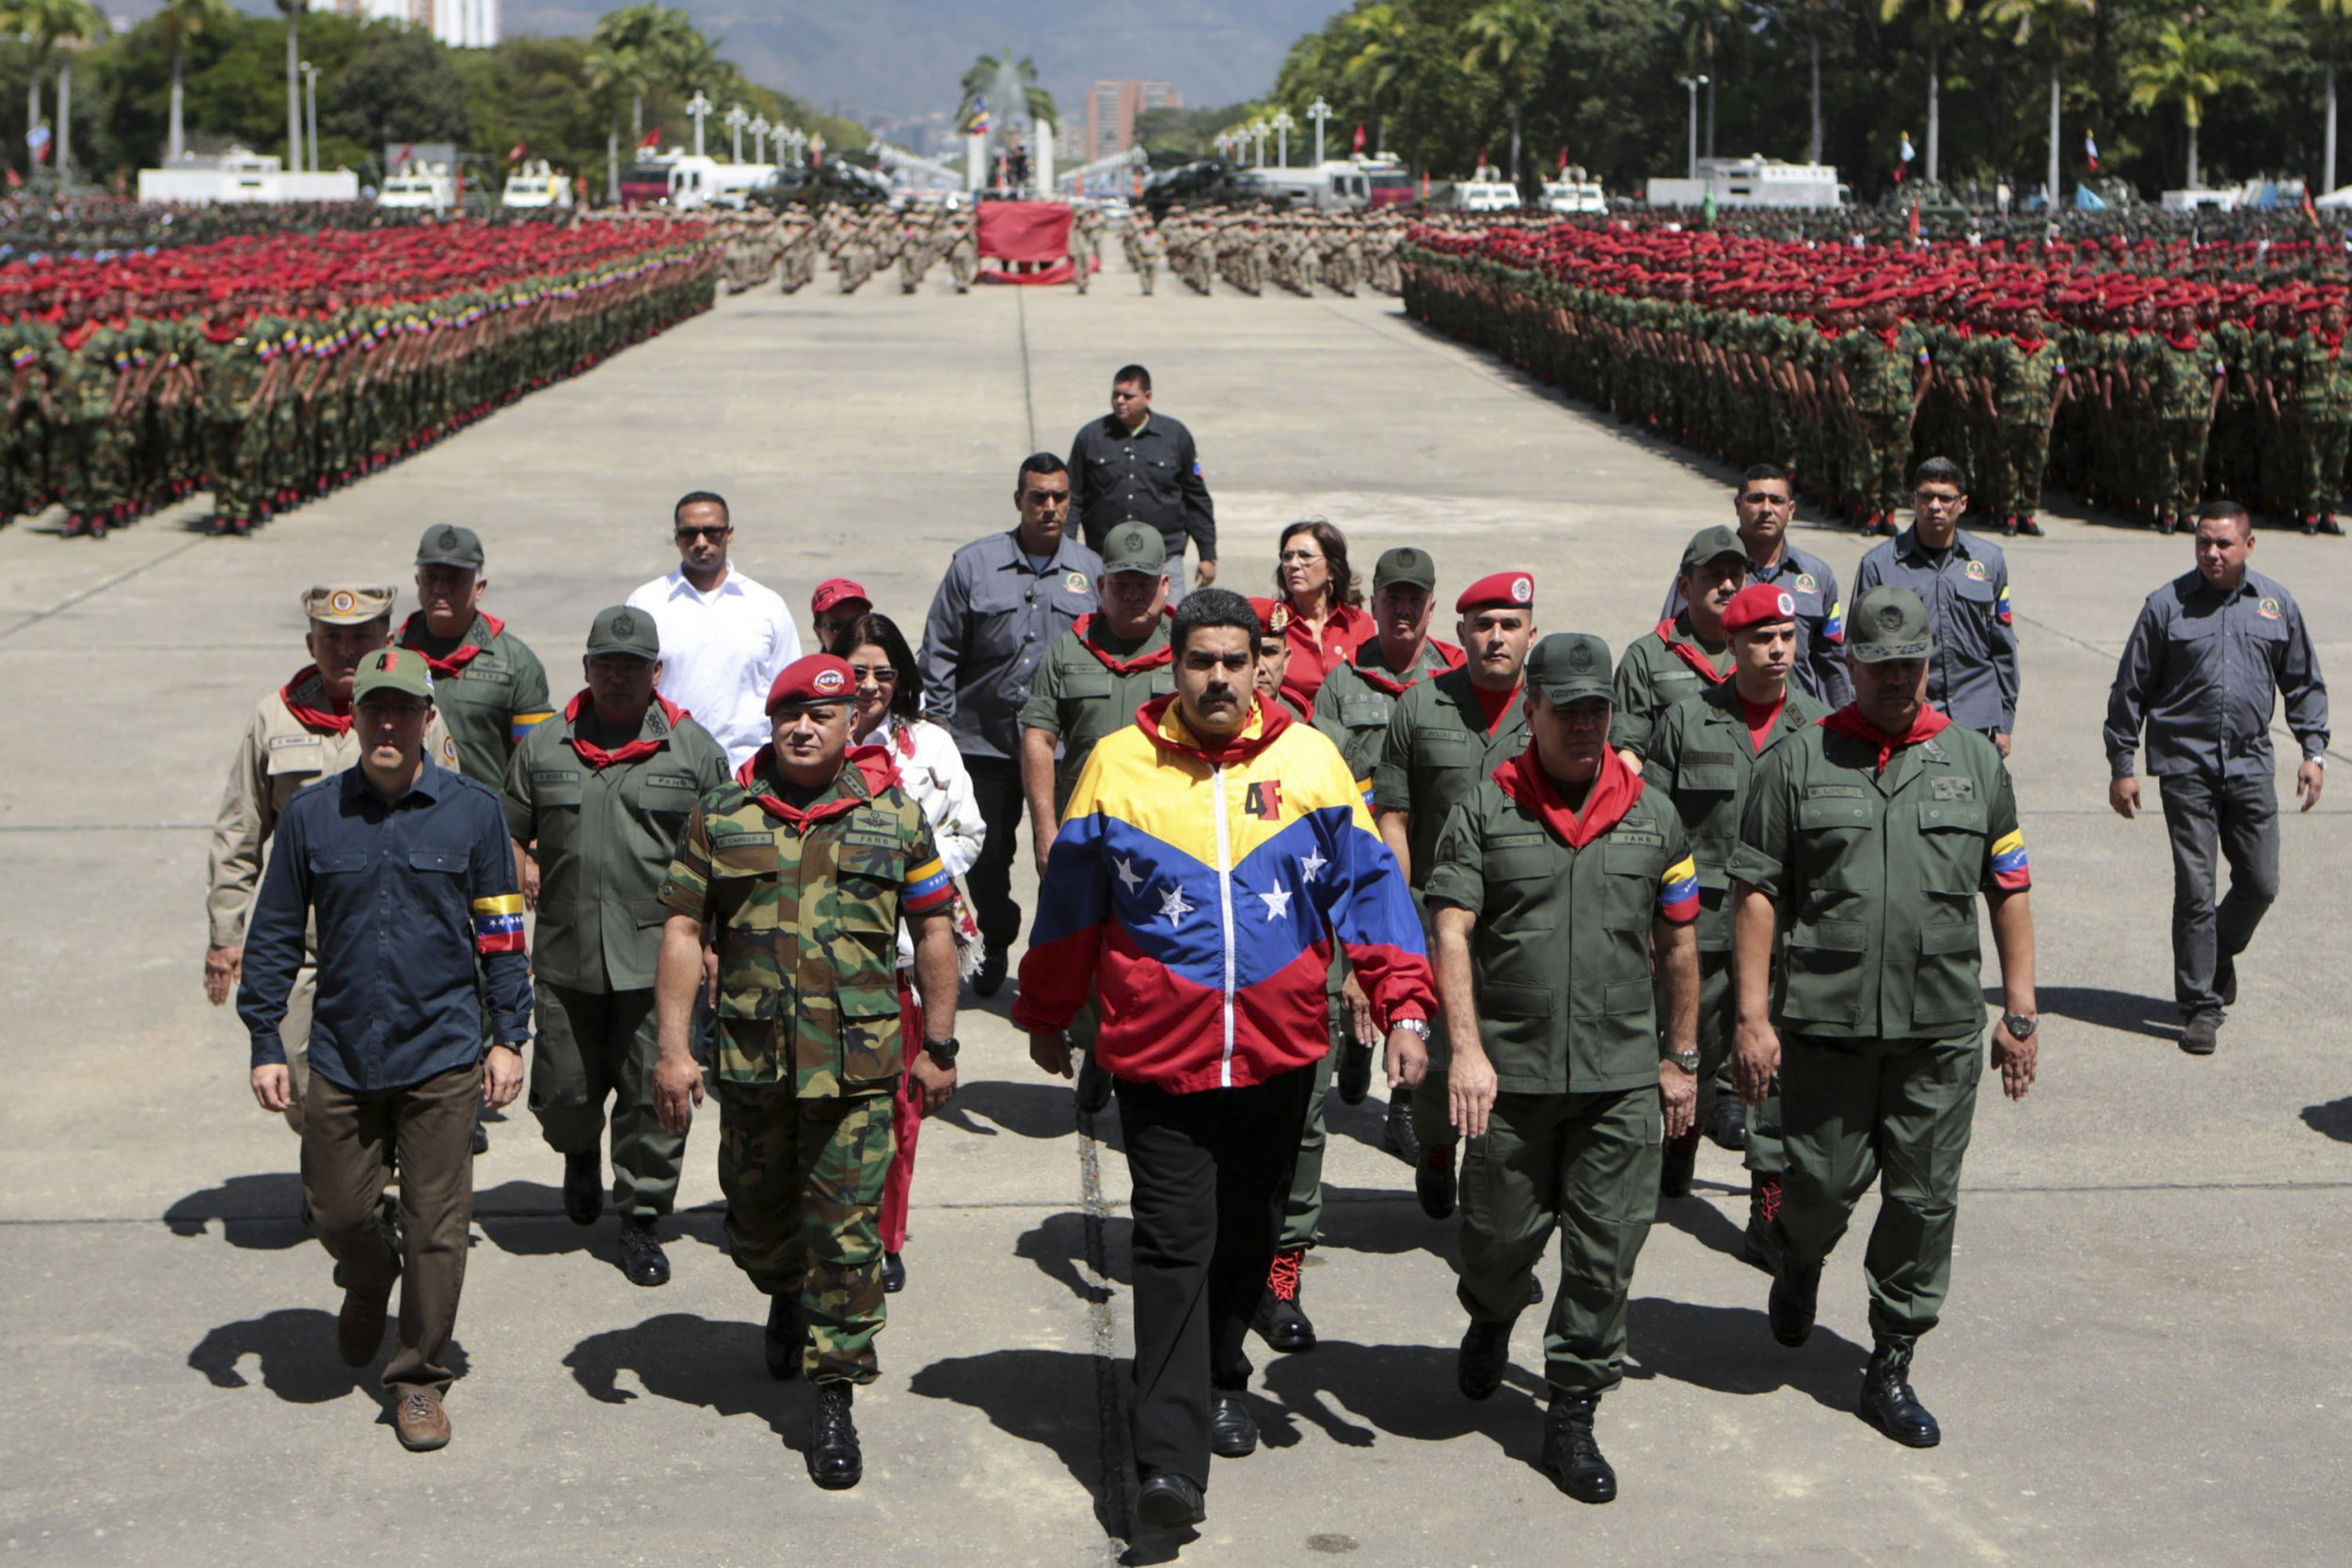 Trump Administration Held Secret Meetings, Planned Coup With Opposition to Overthrow Venezuelan President: Report